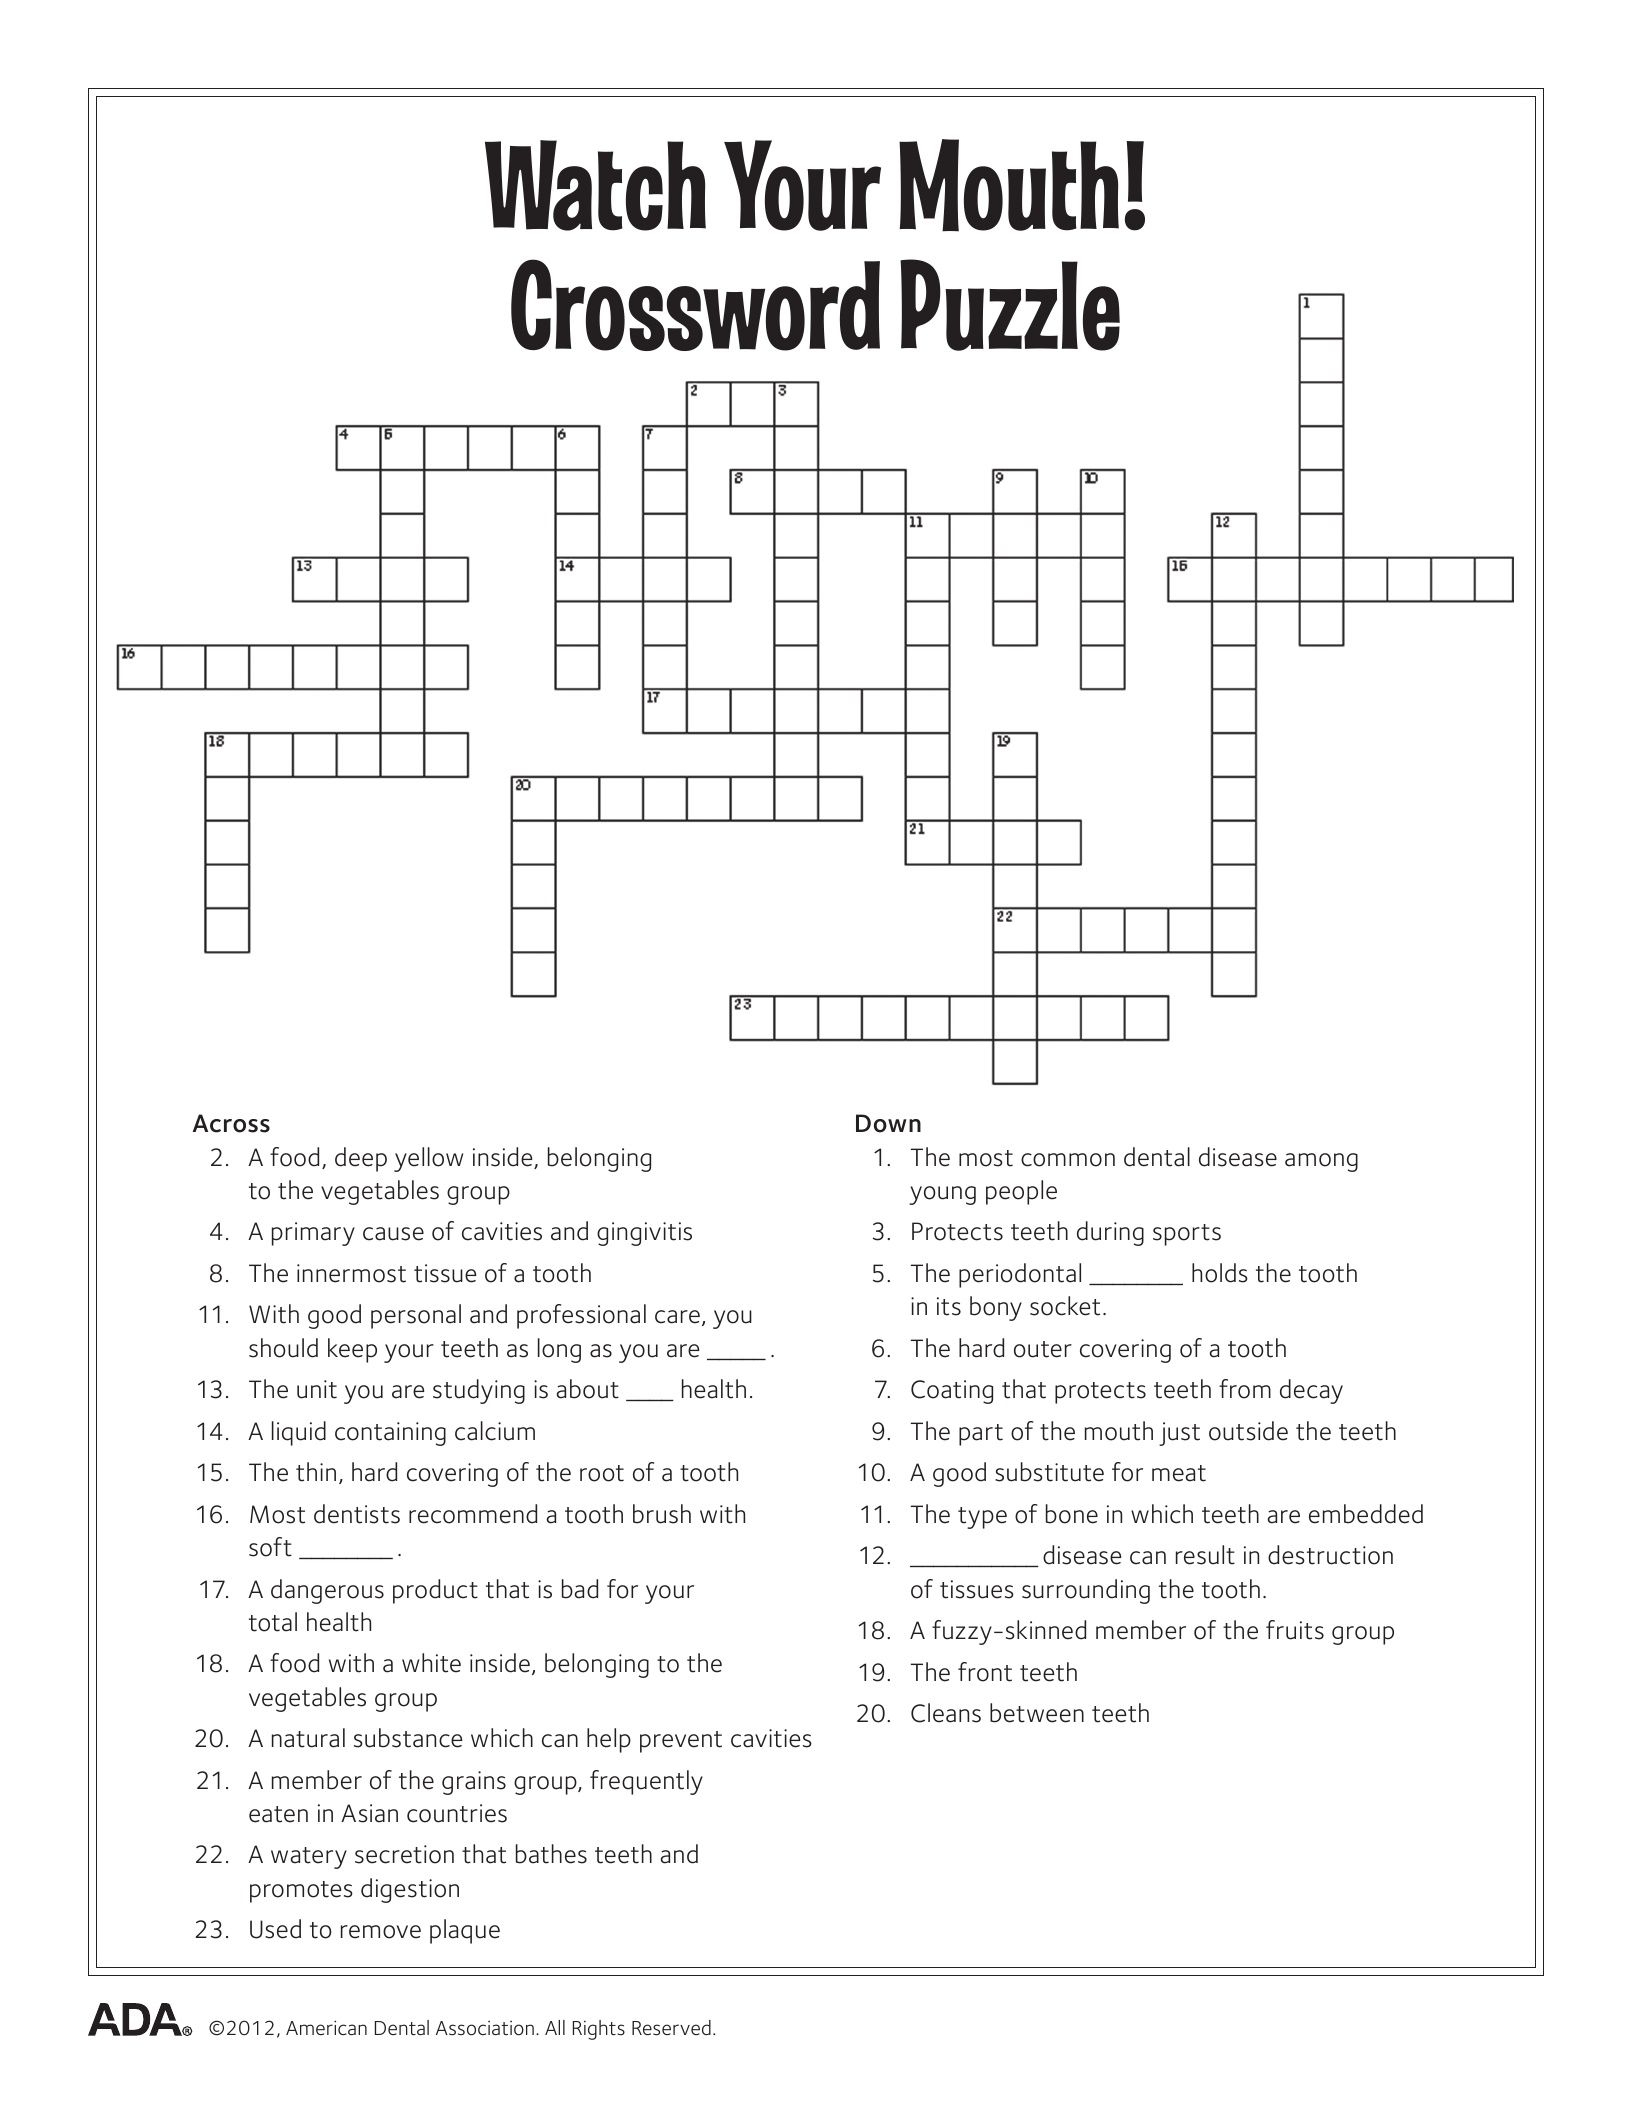 11 Dental Health Activities Puzzle Fun (Printable) | Dental Hygiene - Printable Mental Health Crossword Puzzle